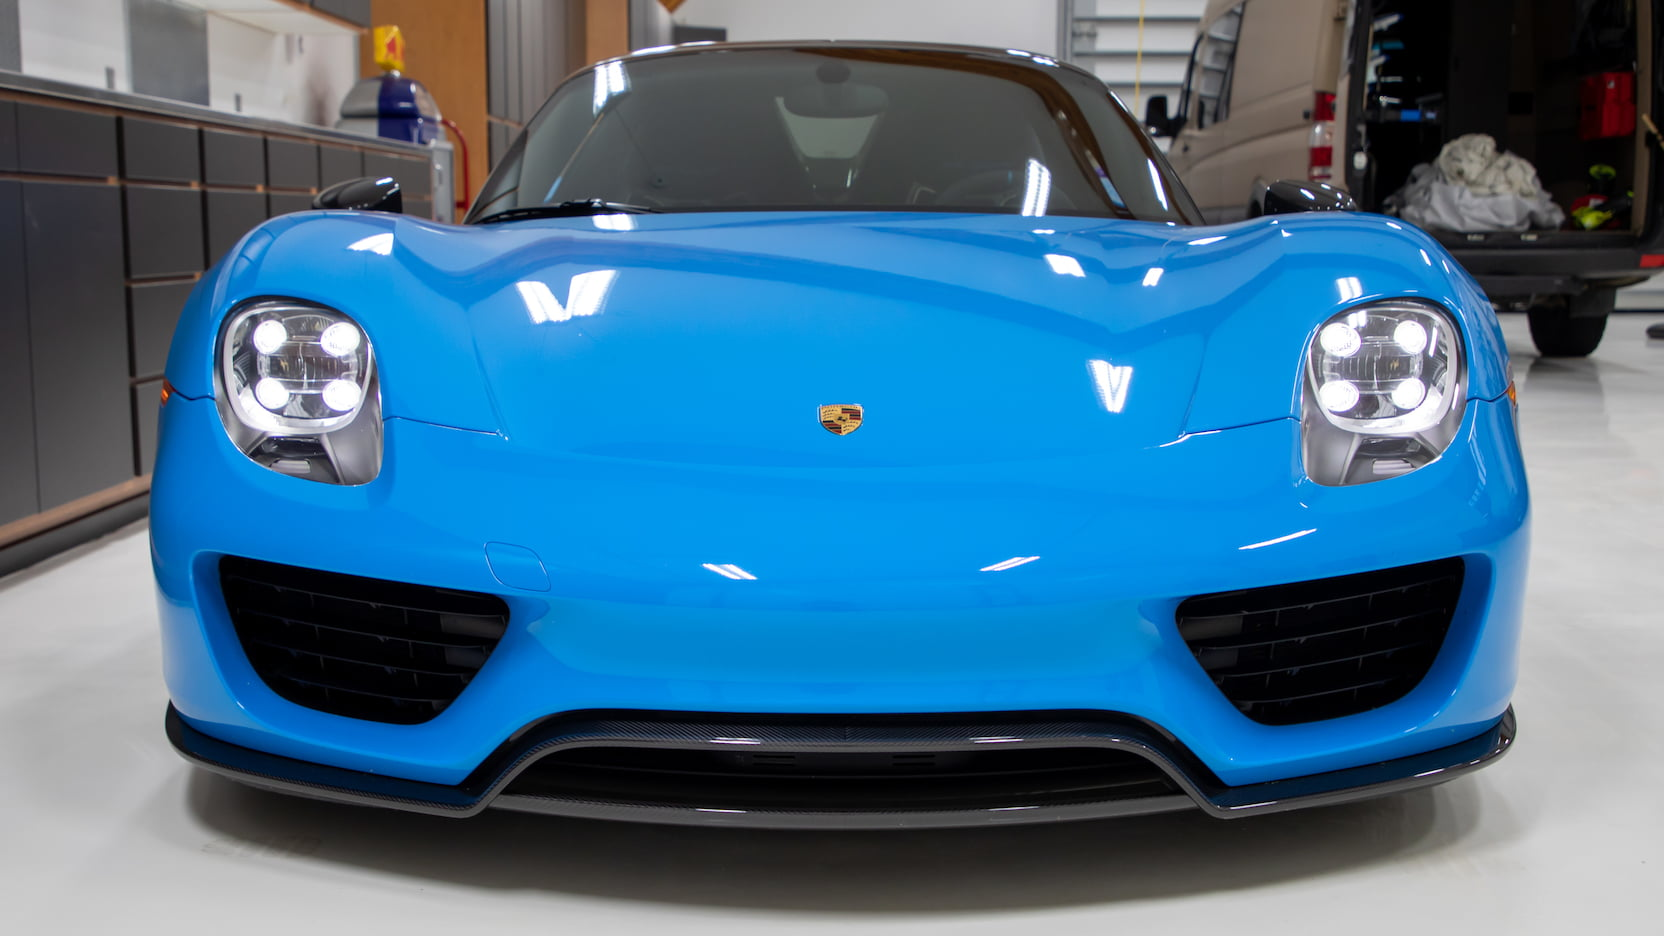 Porsche-918-Spyder-Riviera-Blue-auction-14